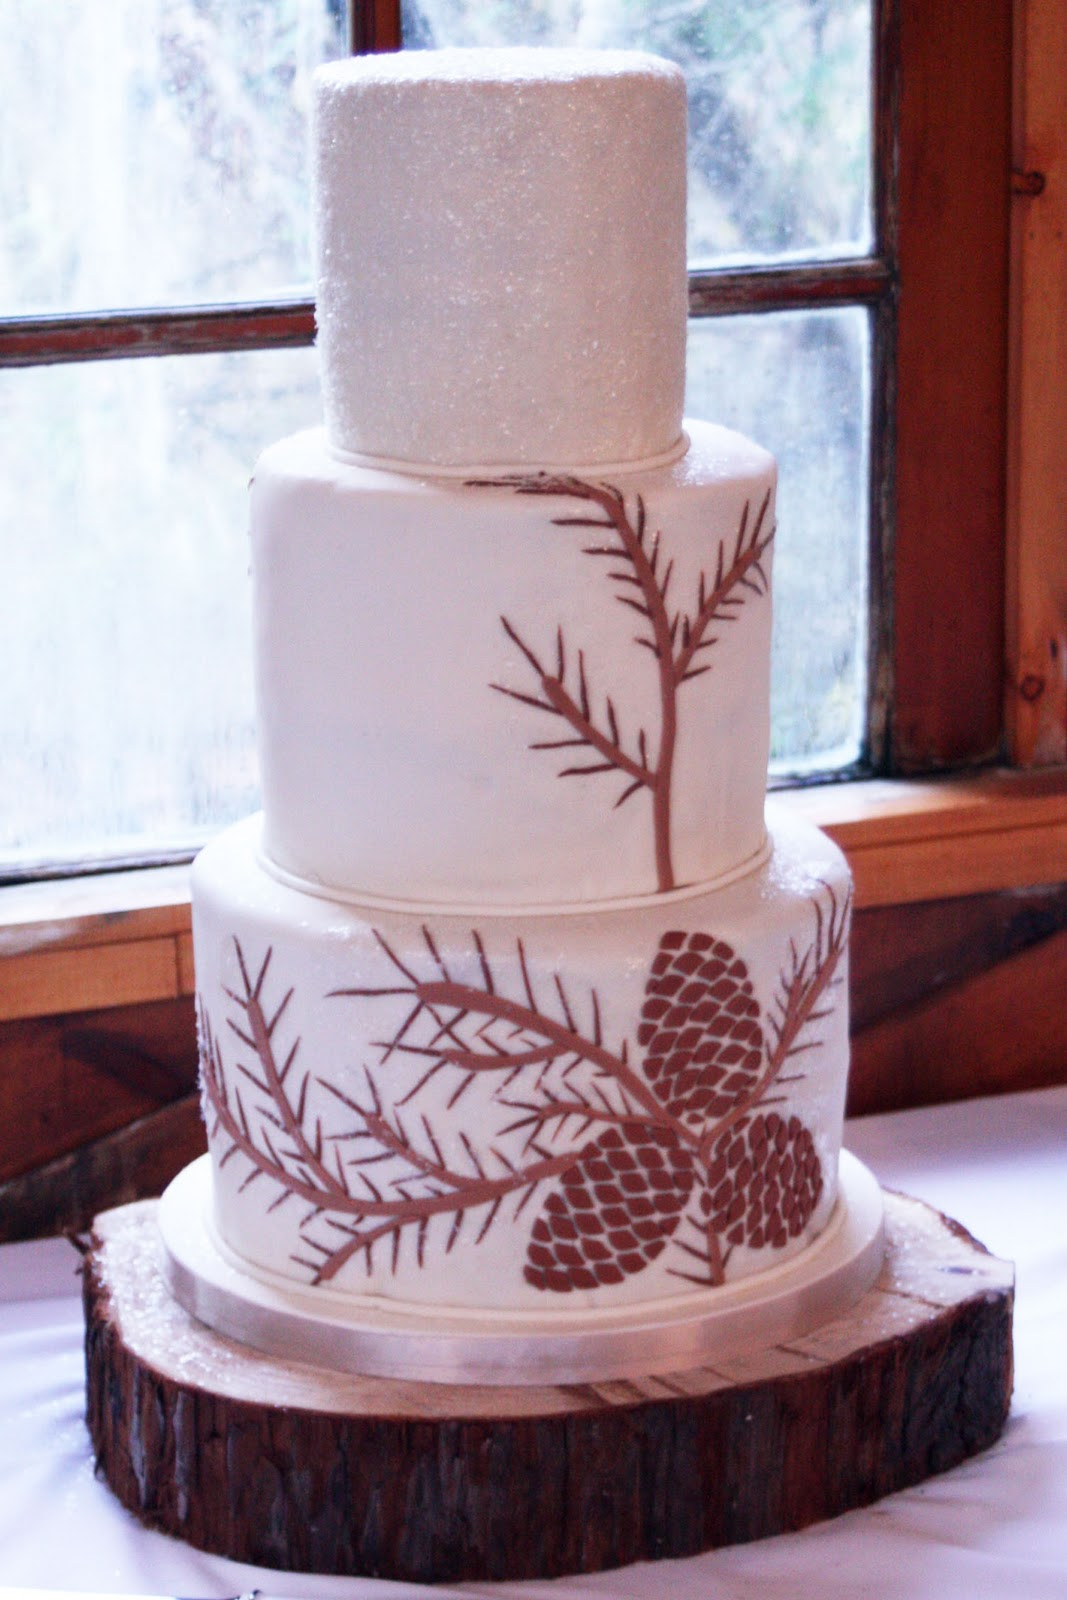 The pine cone wedding cake followed the theme of the wedding.